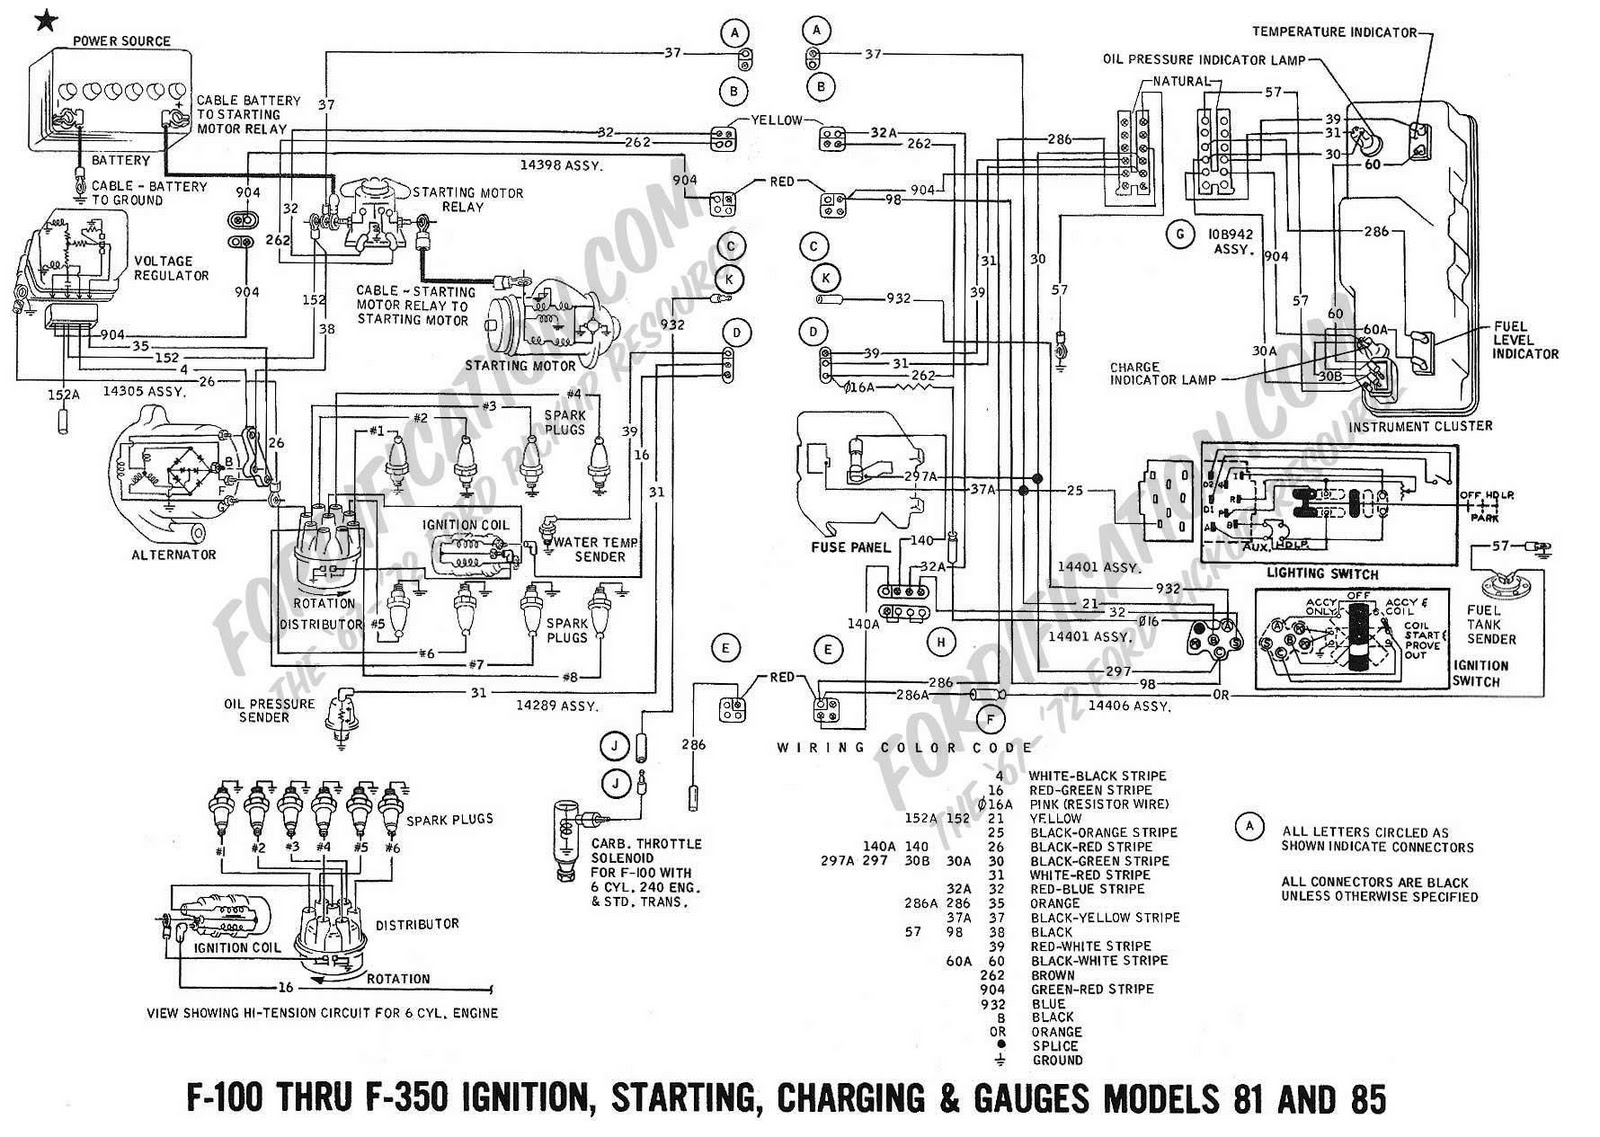 1970 ford f100 dash wiring diagram